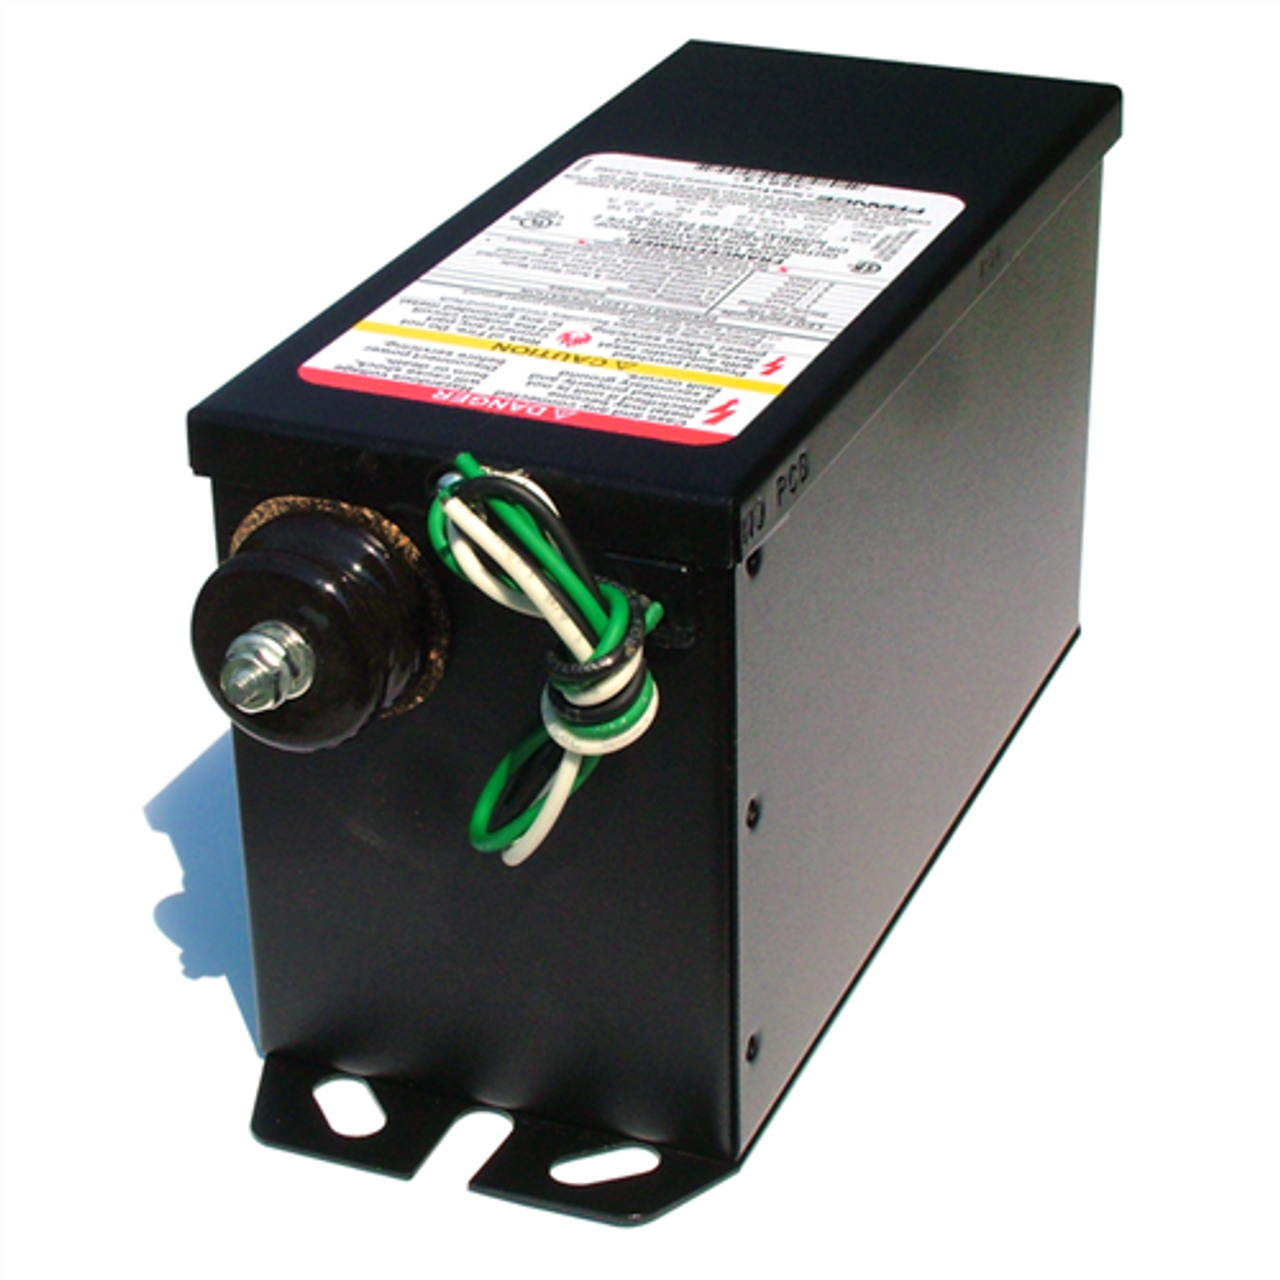 Mean Well neuf TN-1500-212B 12 V 150 A 1500 W 220VAC Chargeur solaire powernex